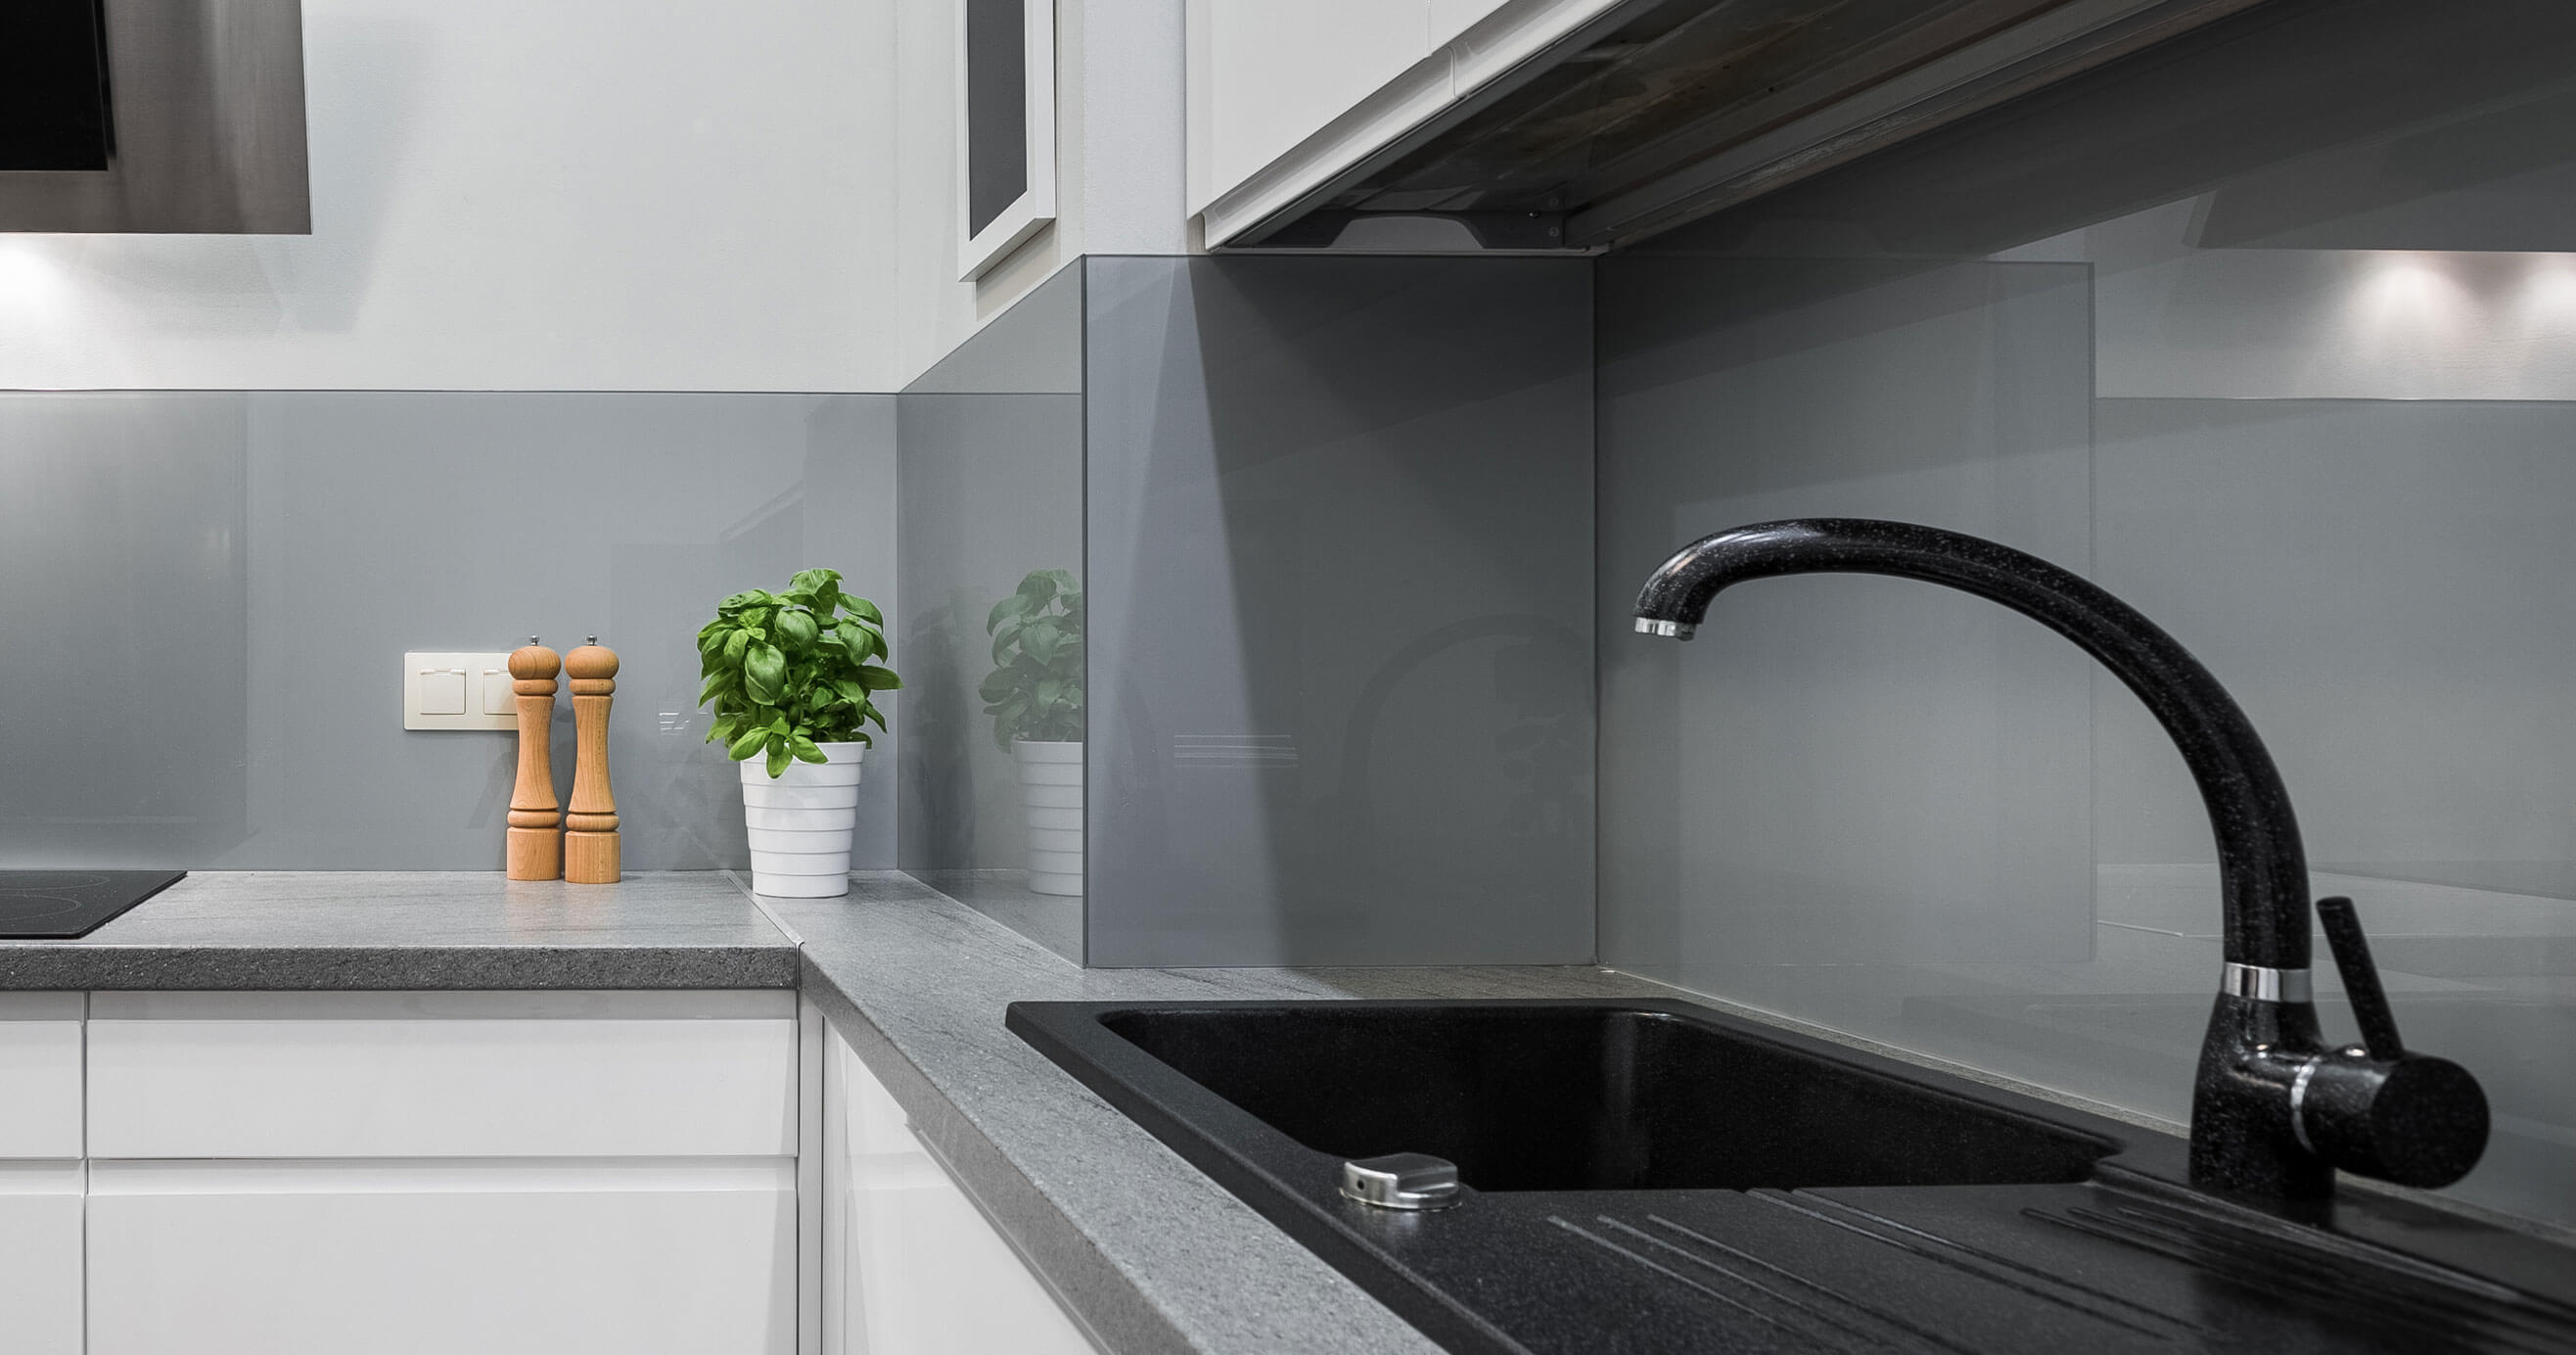 View of sink in a kitchen